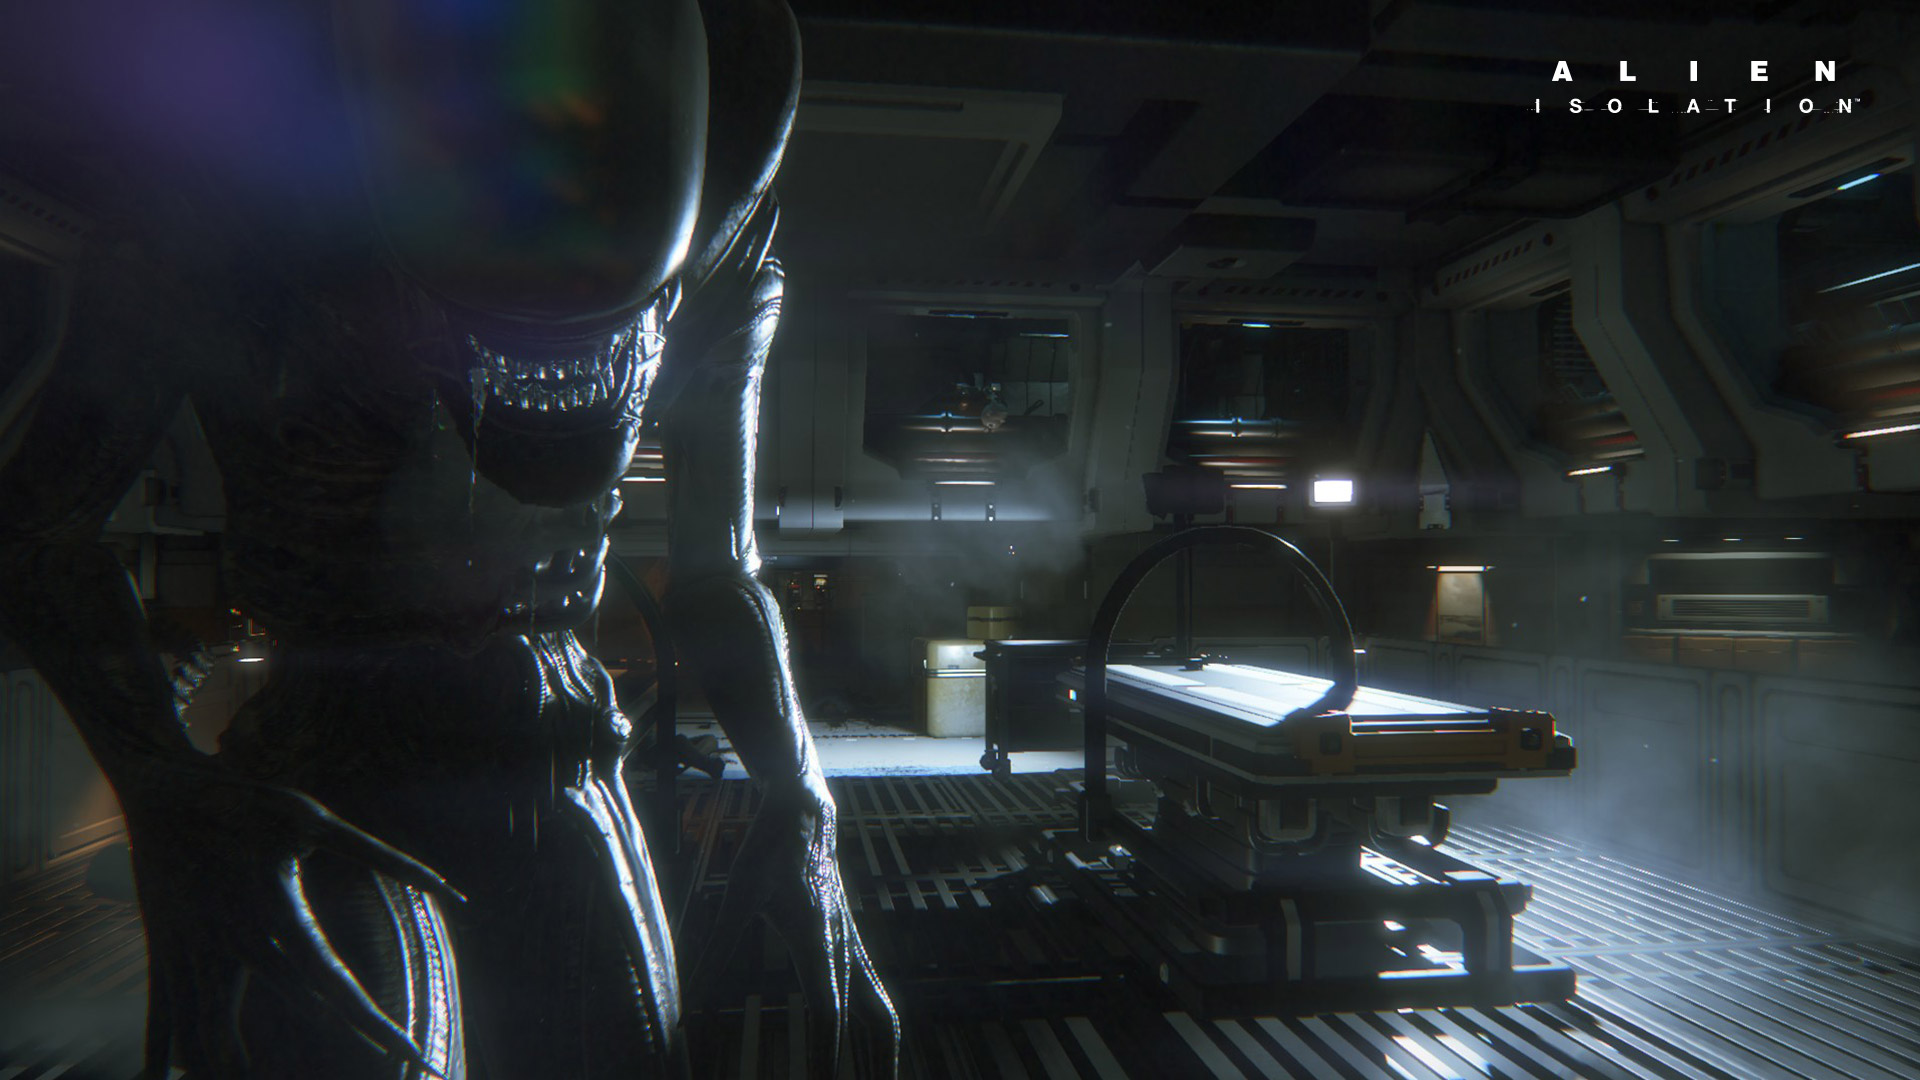 29 Alien Isolation Wallpapers for Laptop   GsFDcY 1920x1080